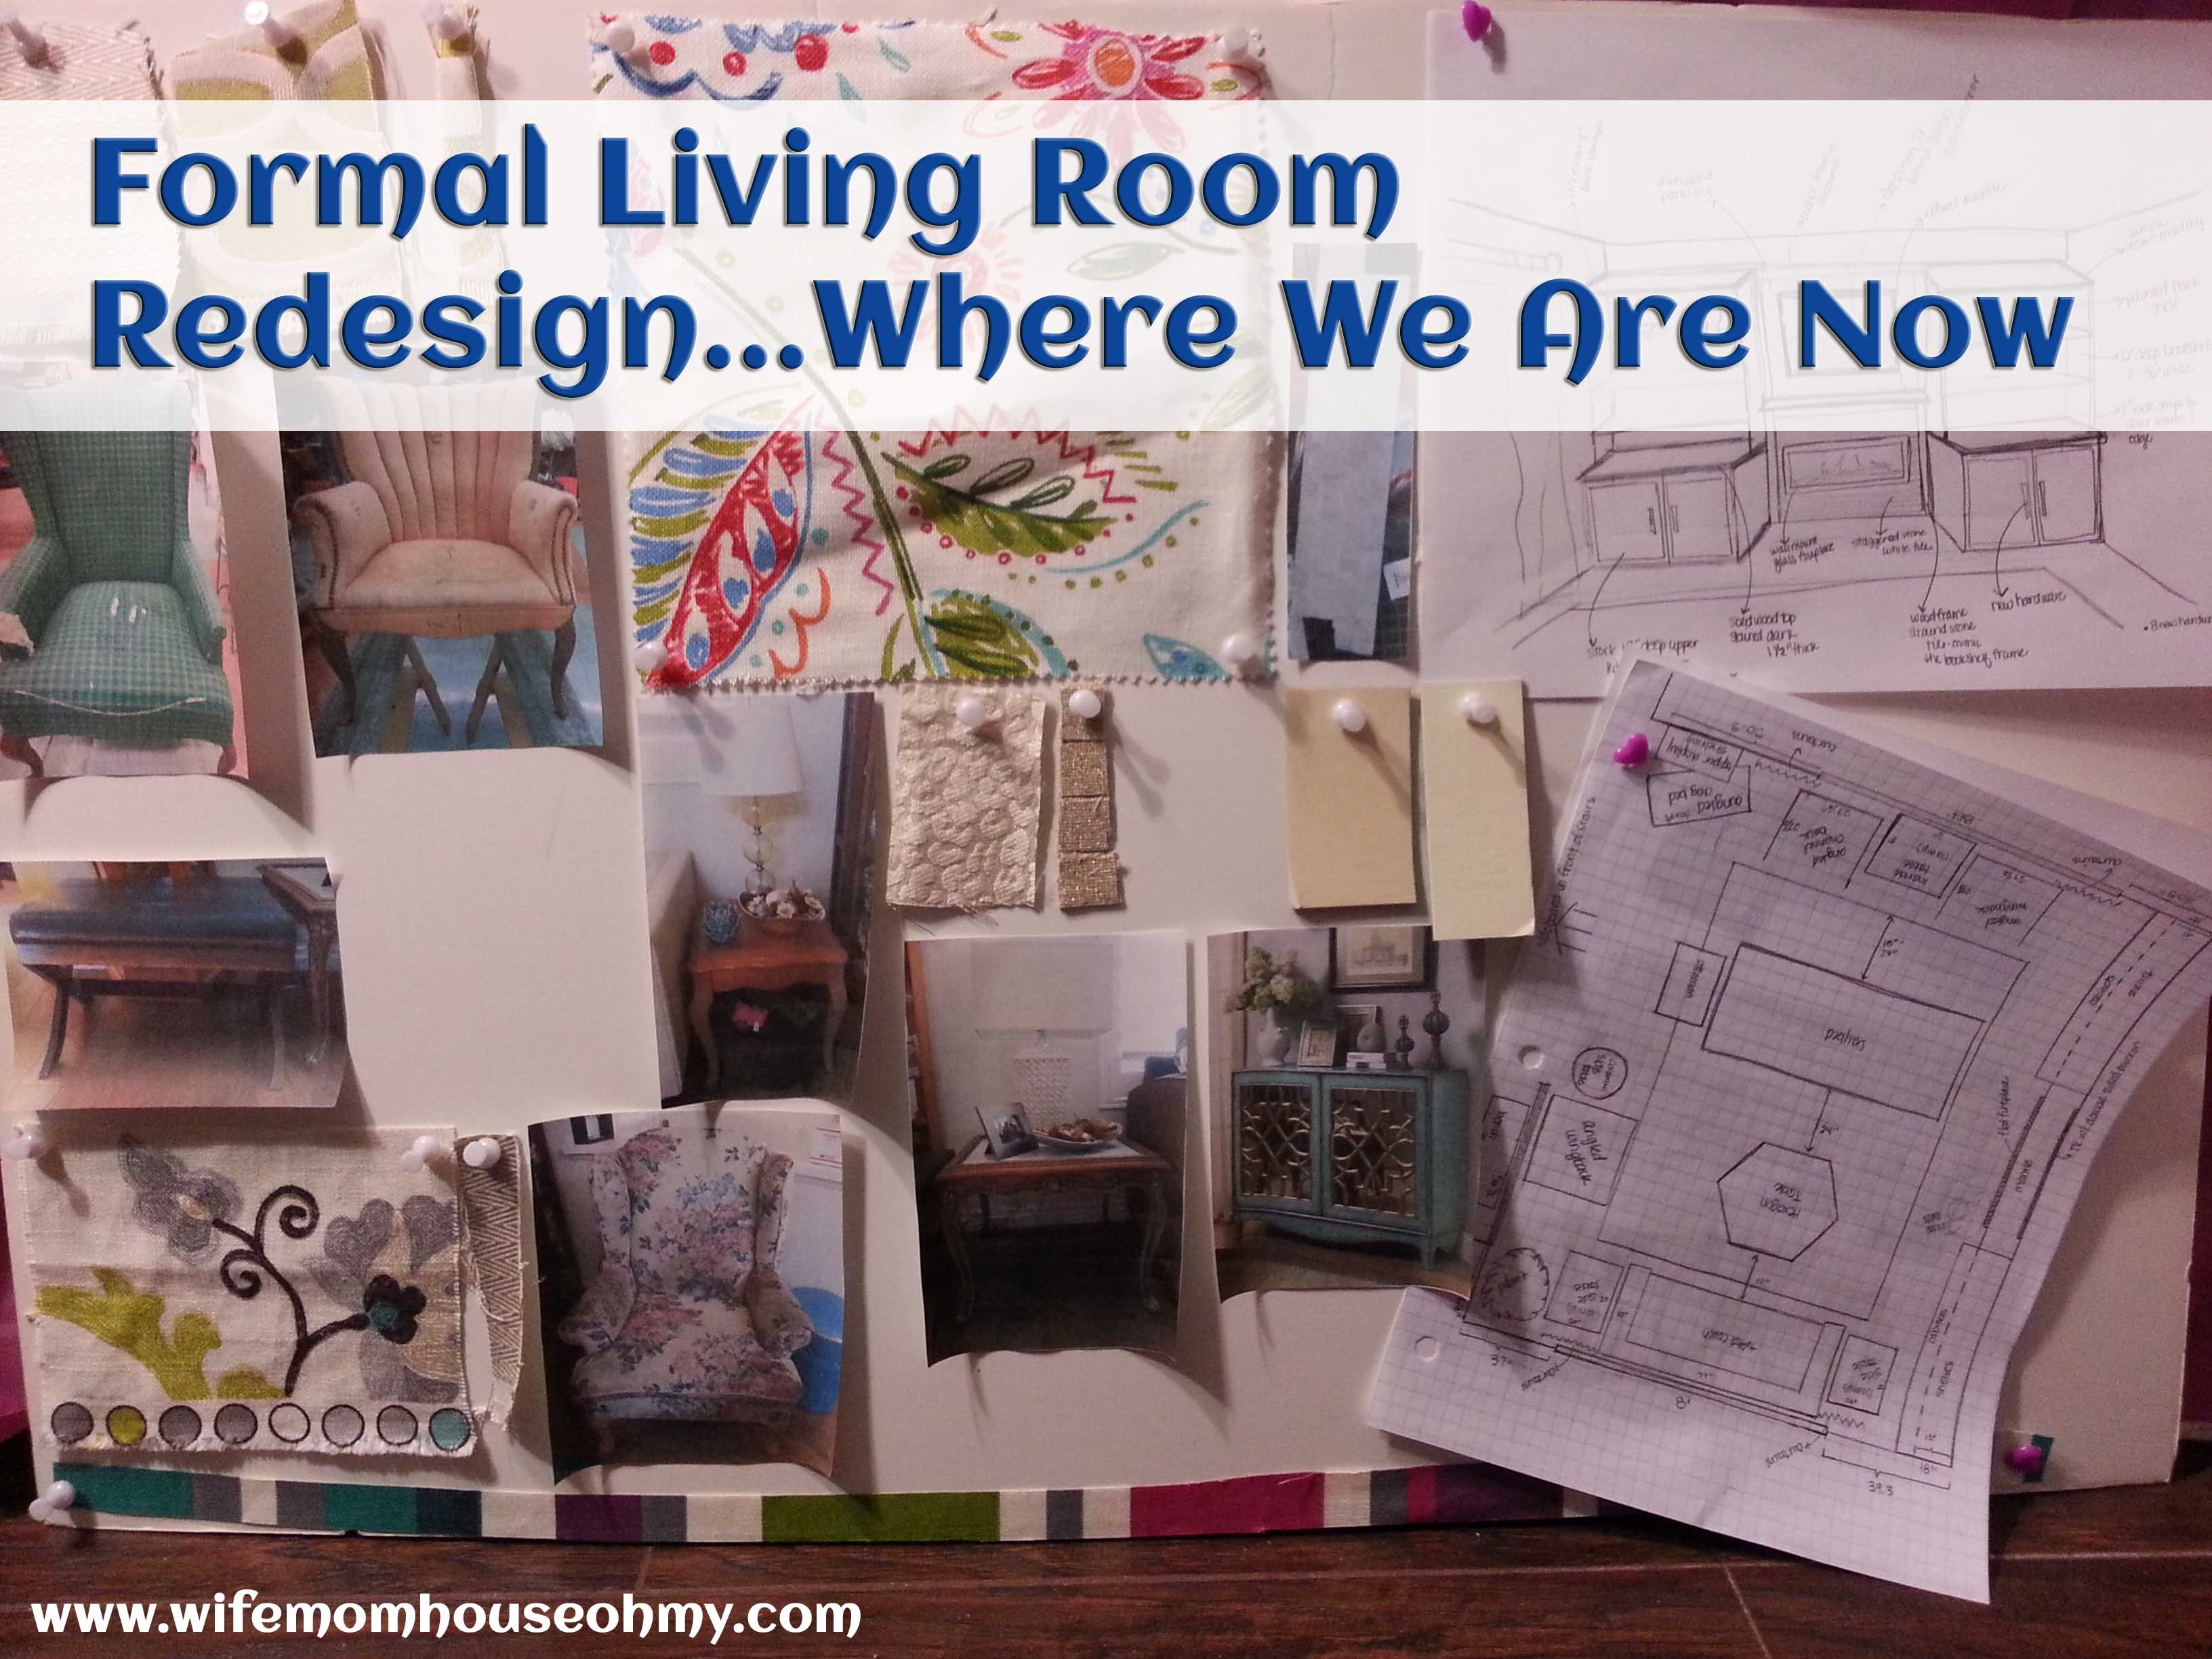 formal living room redesign where we are now